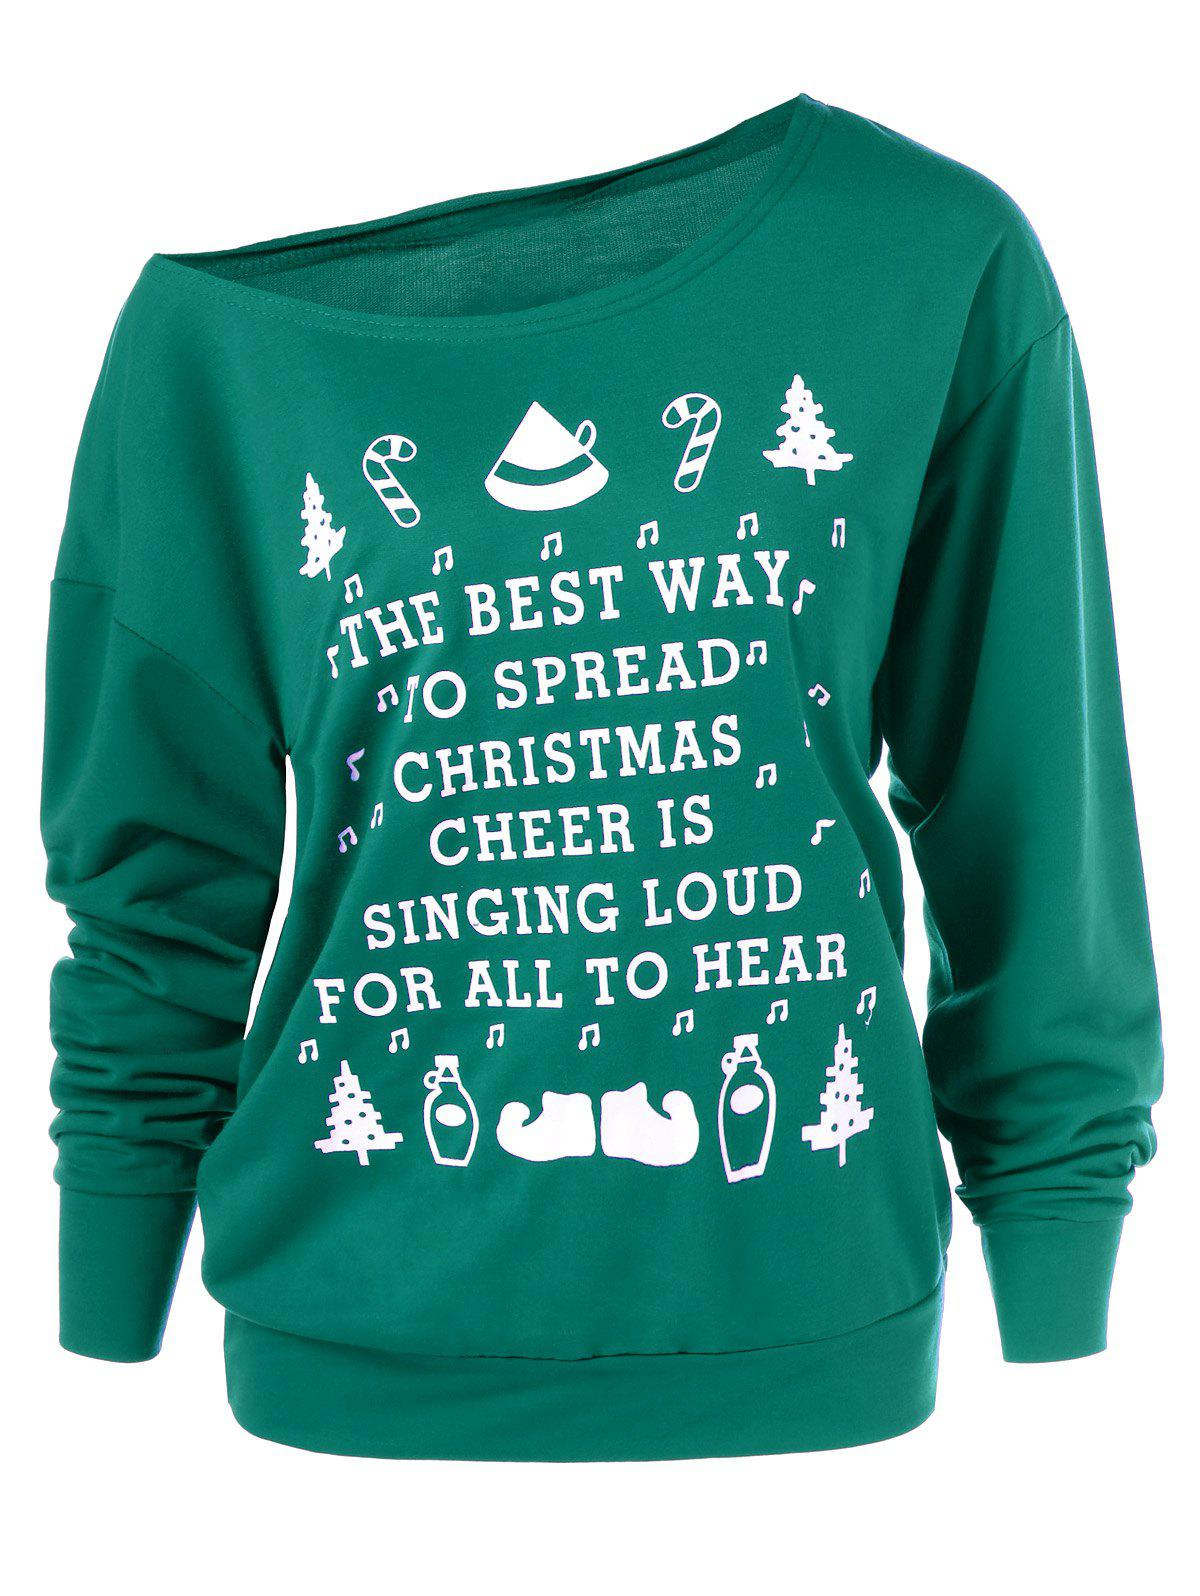 Image of Christmas Graphic Pullover Skew Neck Green Sweatshirt